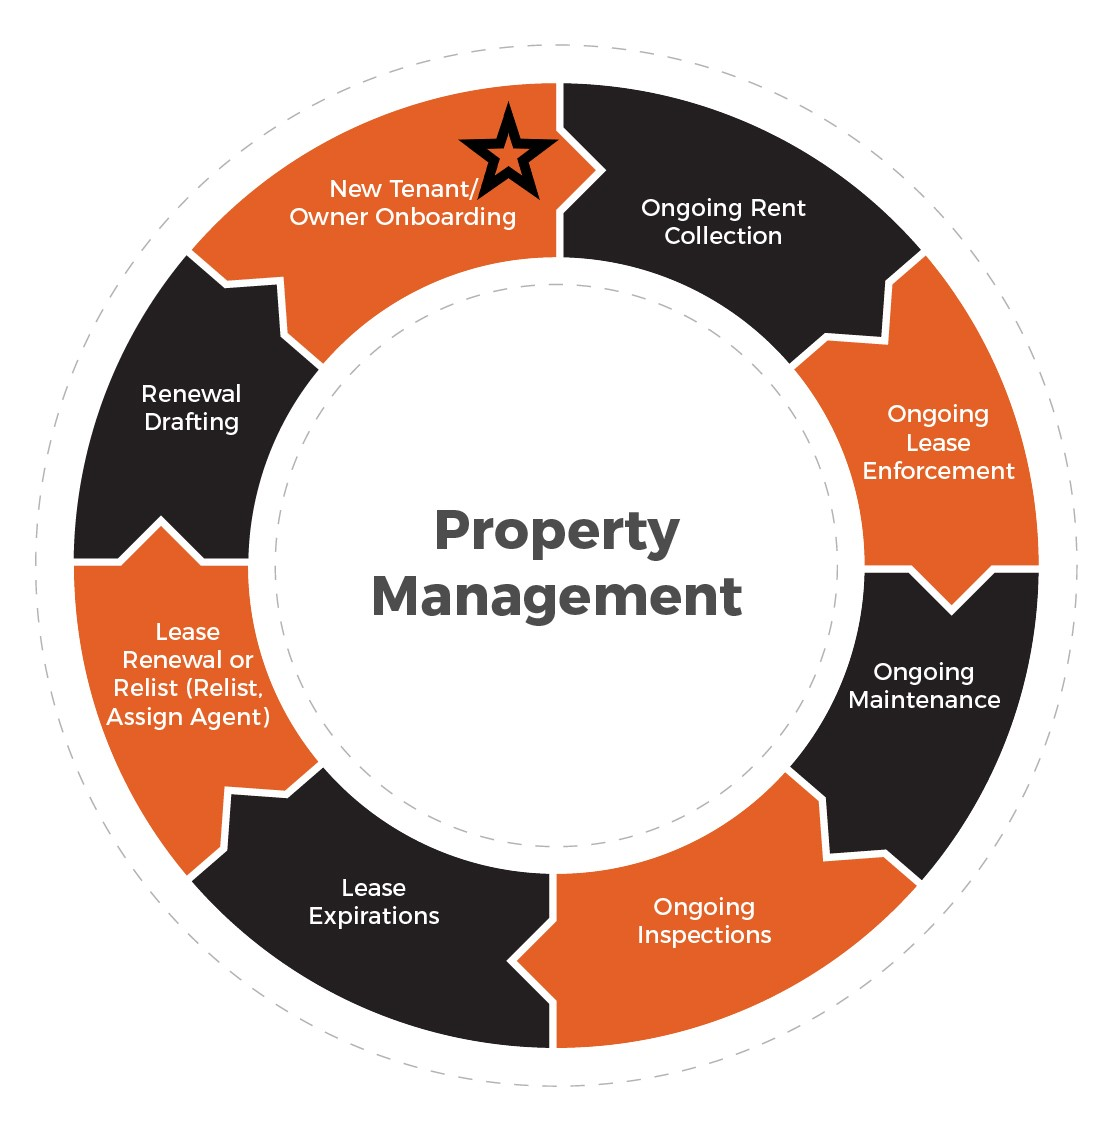 The Ongoing Property Management Phase